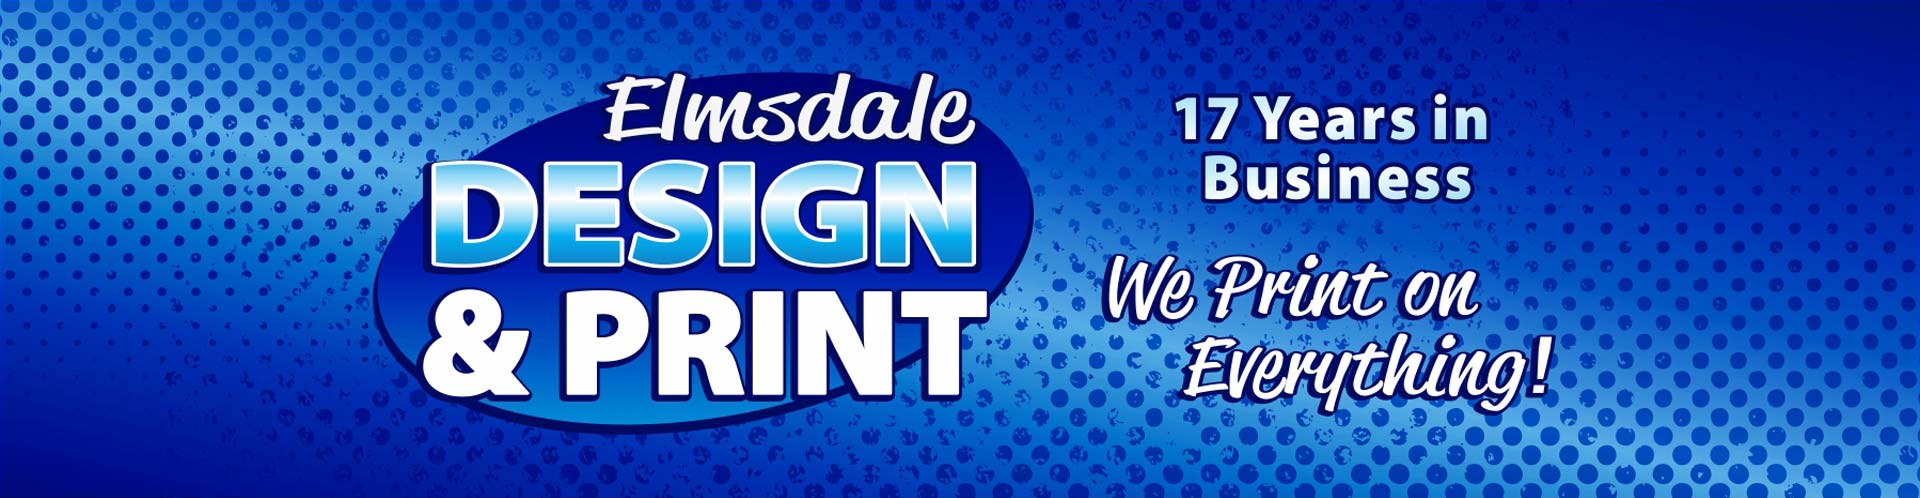 Elmsdale Design & Print offers a one-stop shop, we print on everything from magnets and wide format posters to t-shirts, business cards and more.